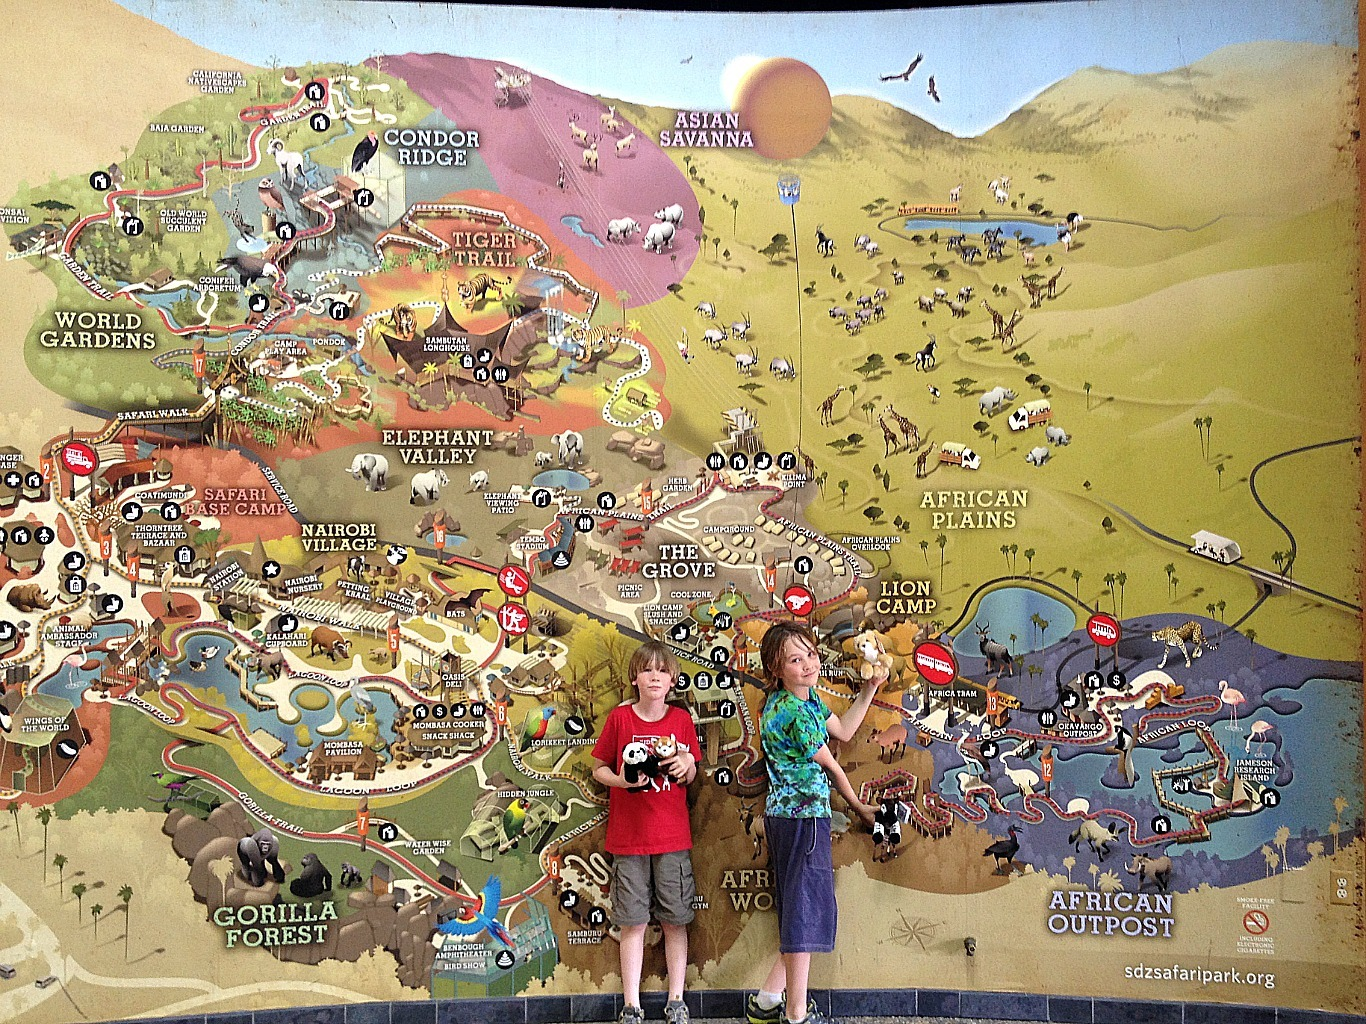 Visiting the Safari Park and planning your visit with a Safari Park map.